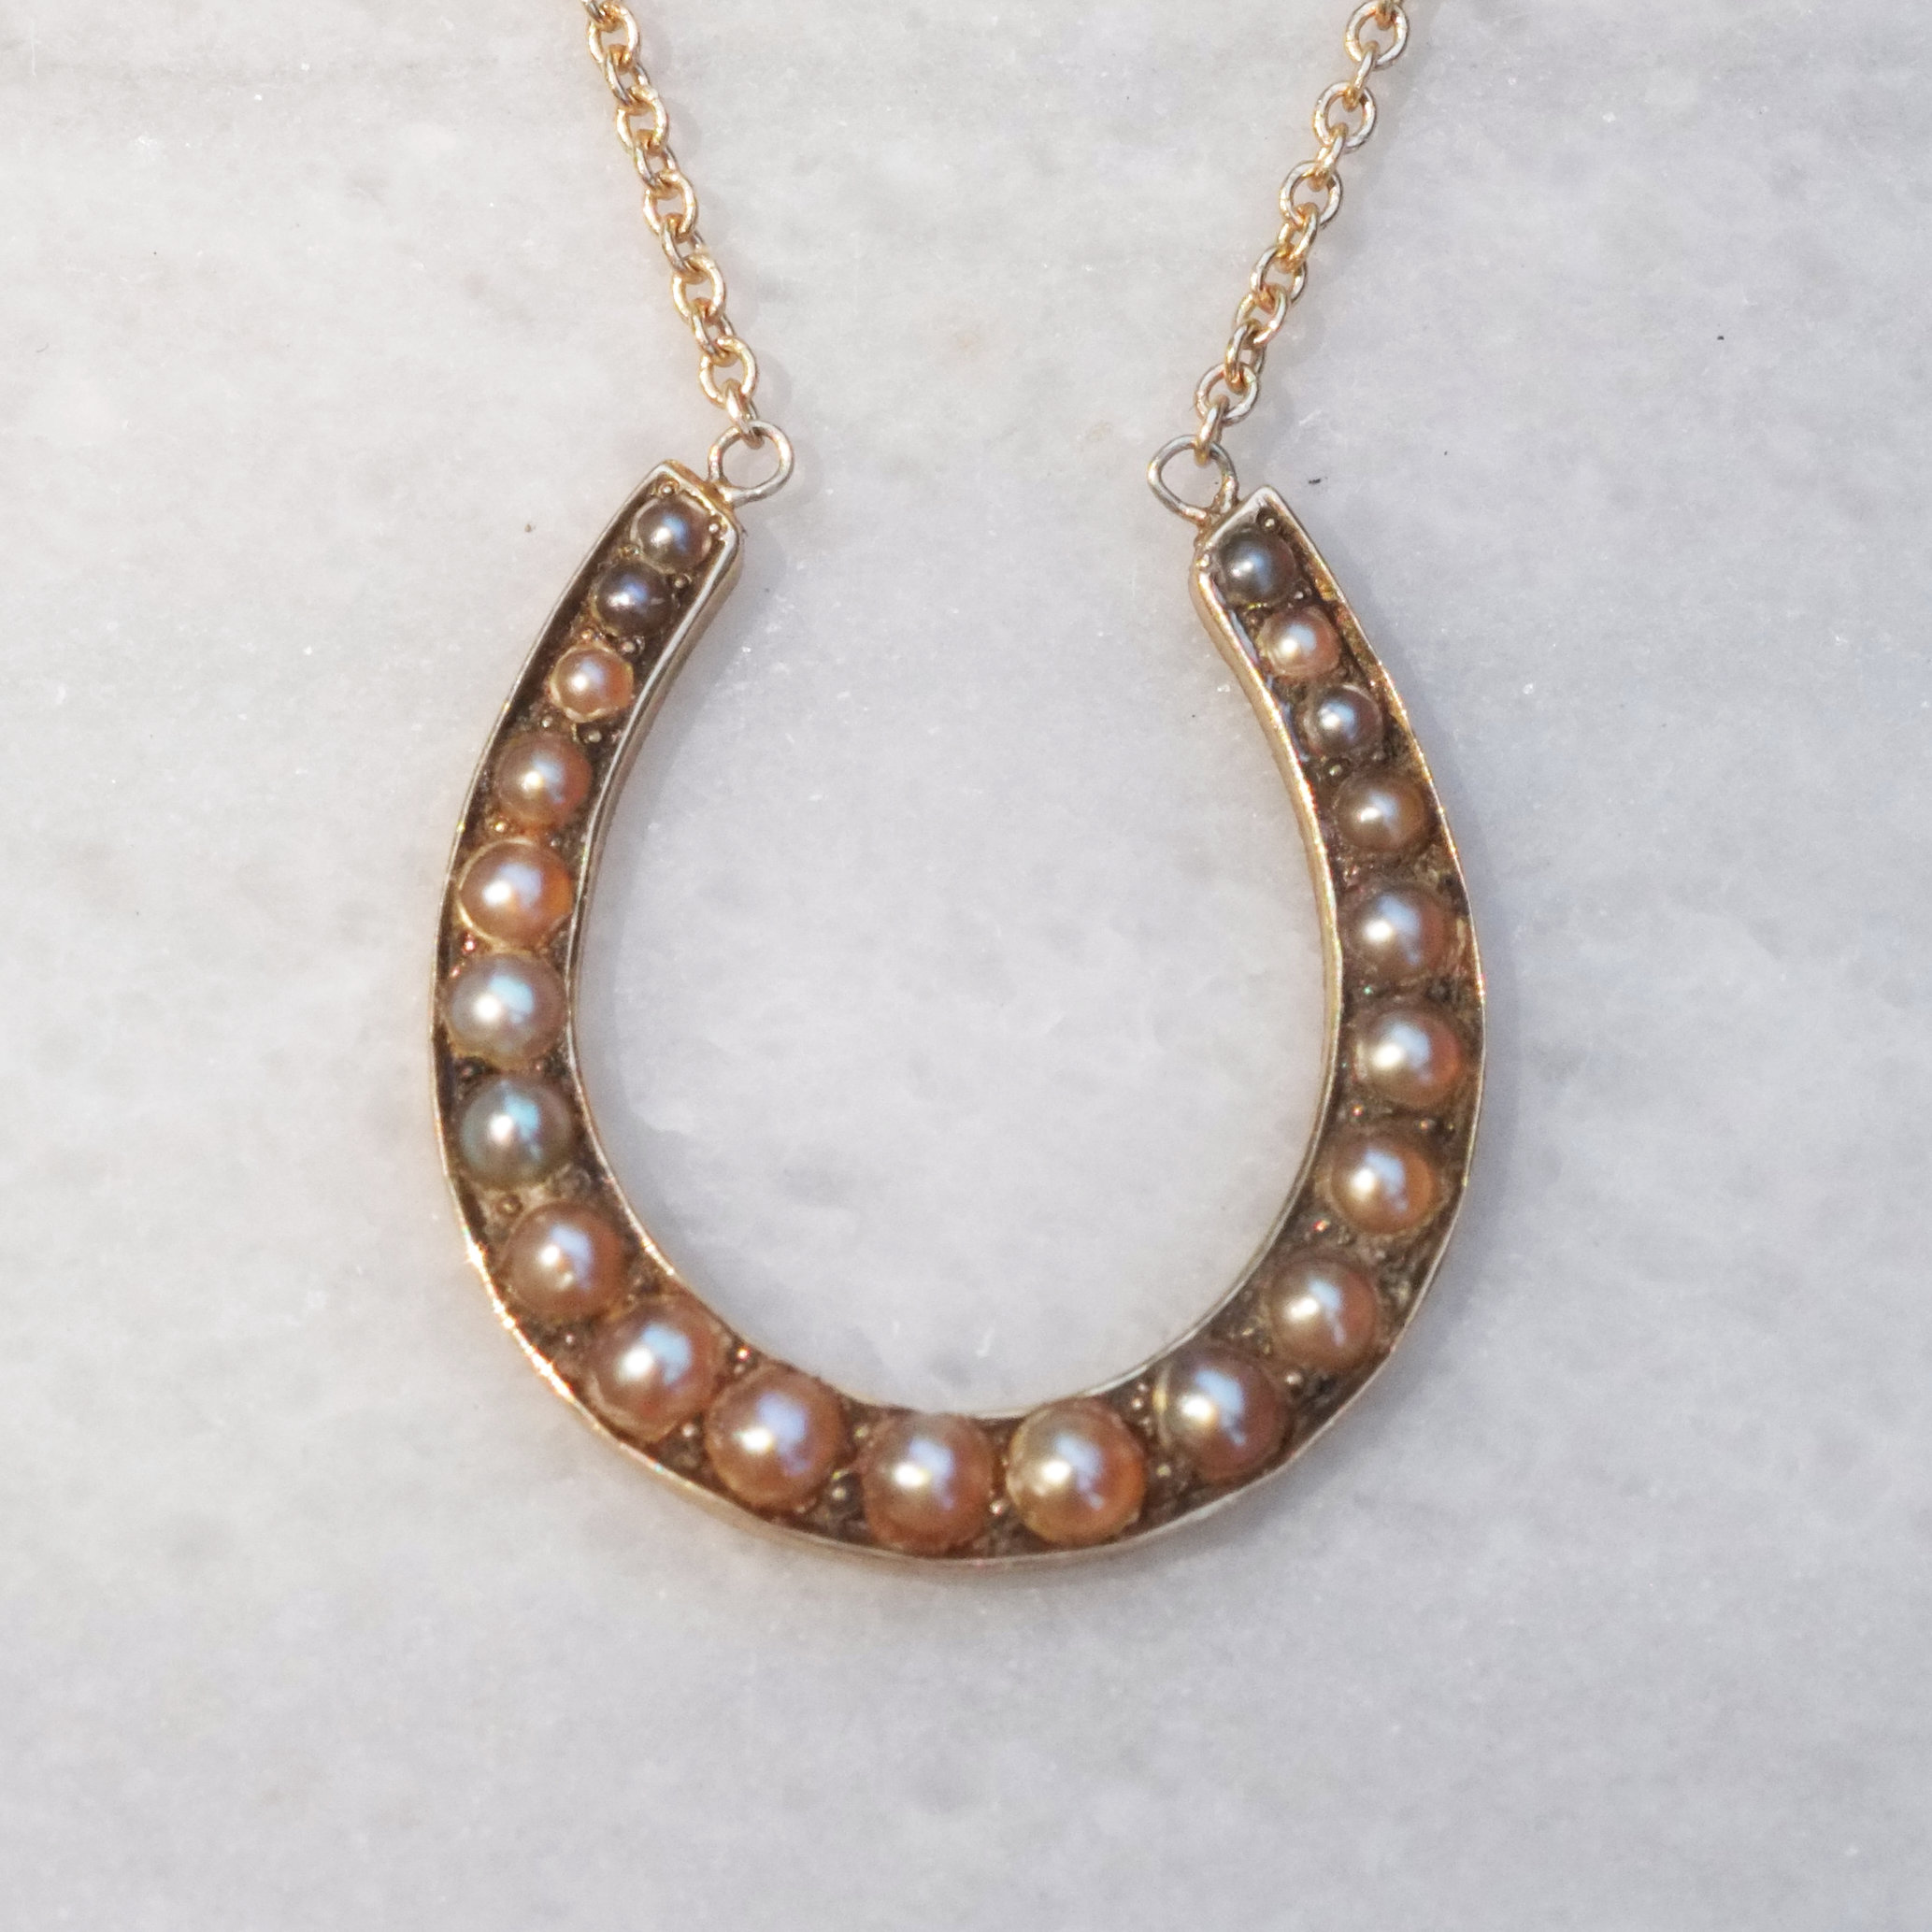 Seedpearl Horseshoe Pendant